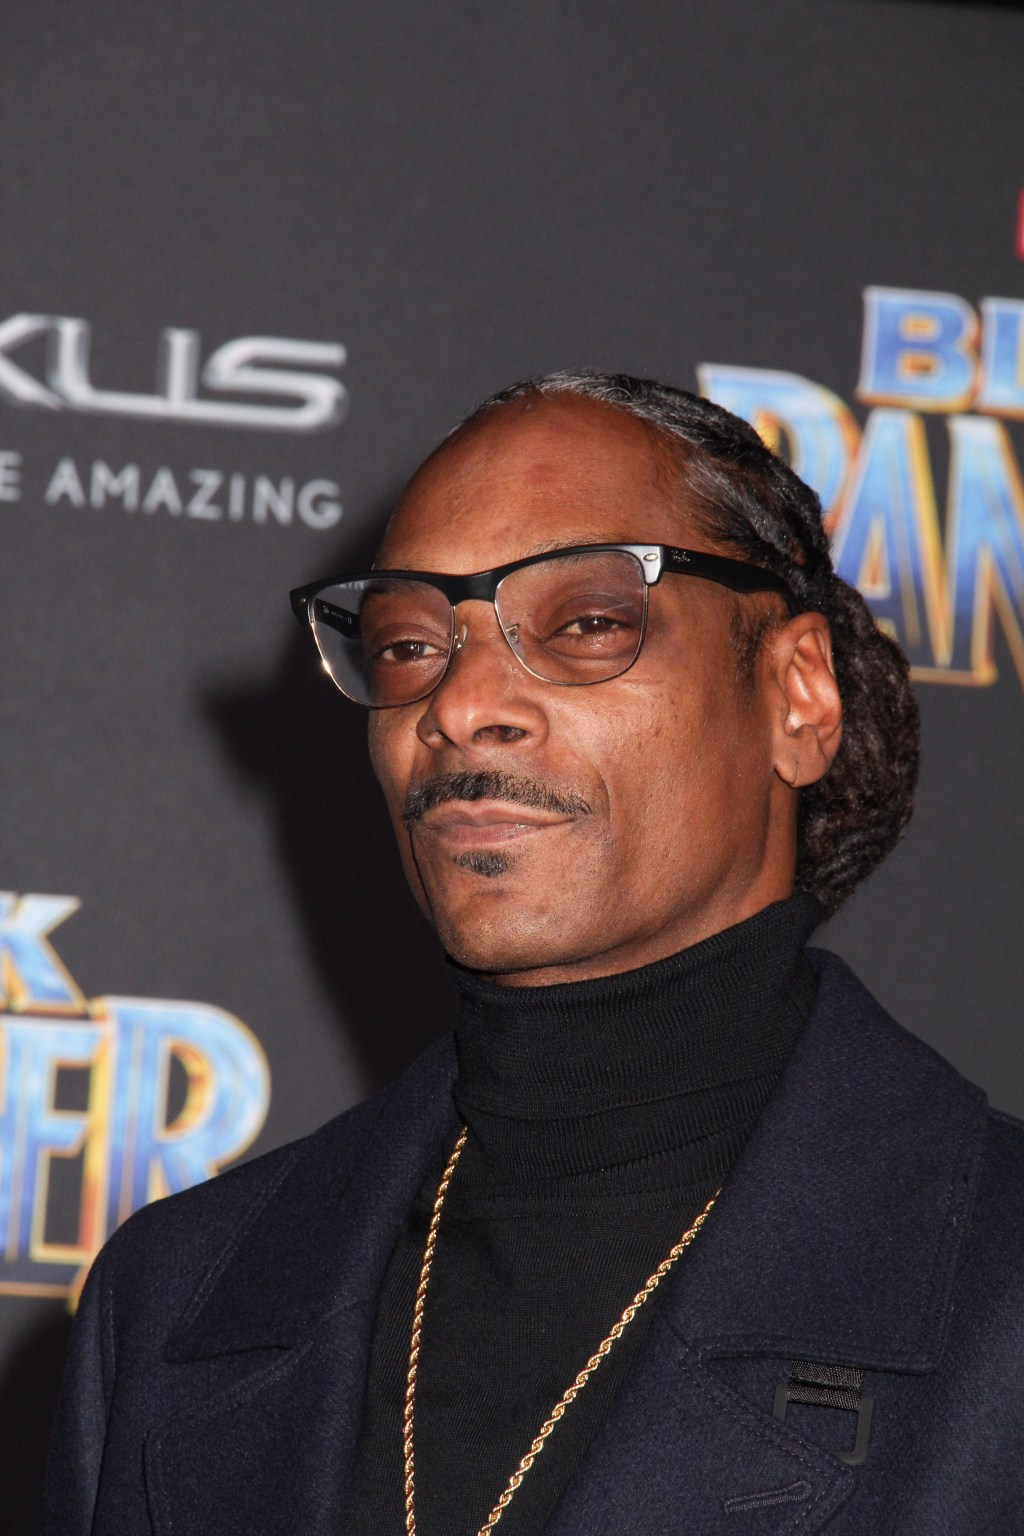 Snoop Dogg Wants To Become A Canadian Citizen By January